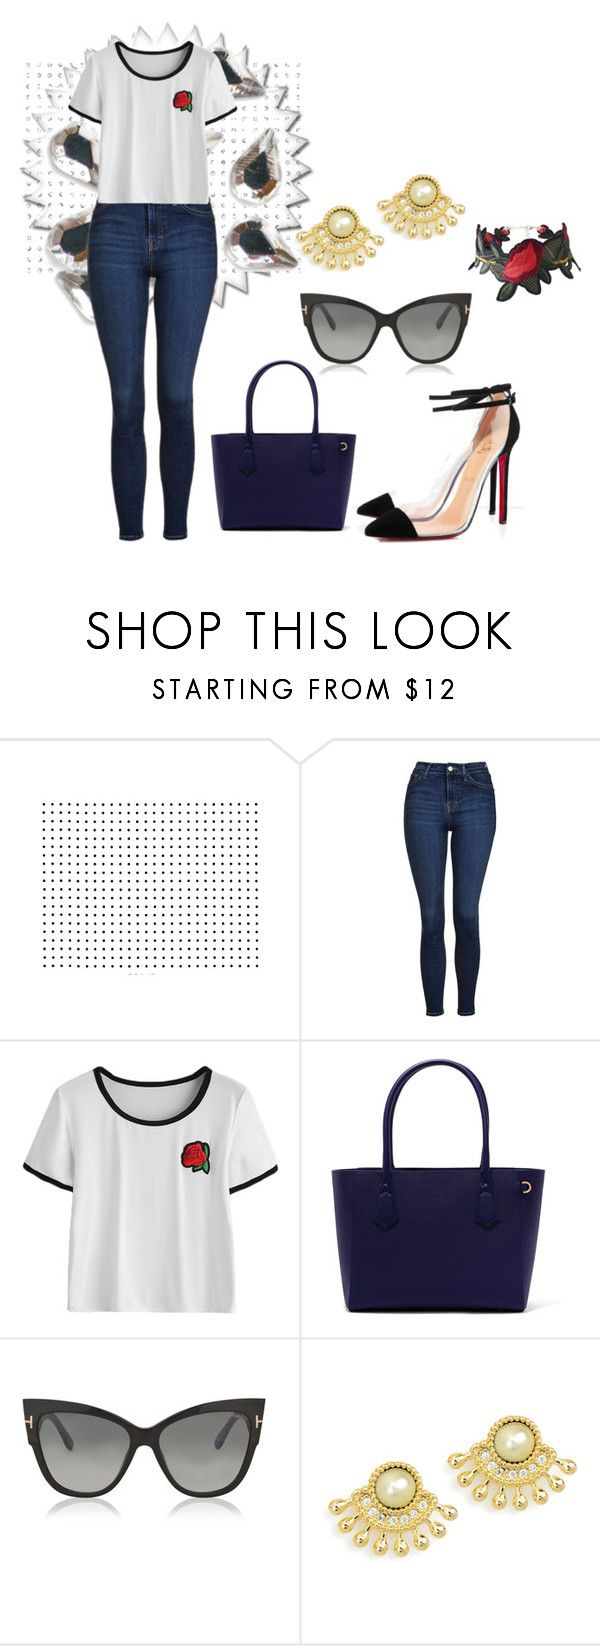 """rose"" by anaily on Polyvore featuring moda, Topshop, Christian Louboutin, Tom Ford, black, Blue, jeans e labotin"